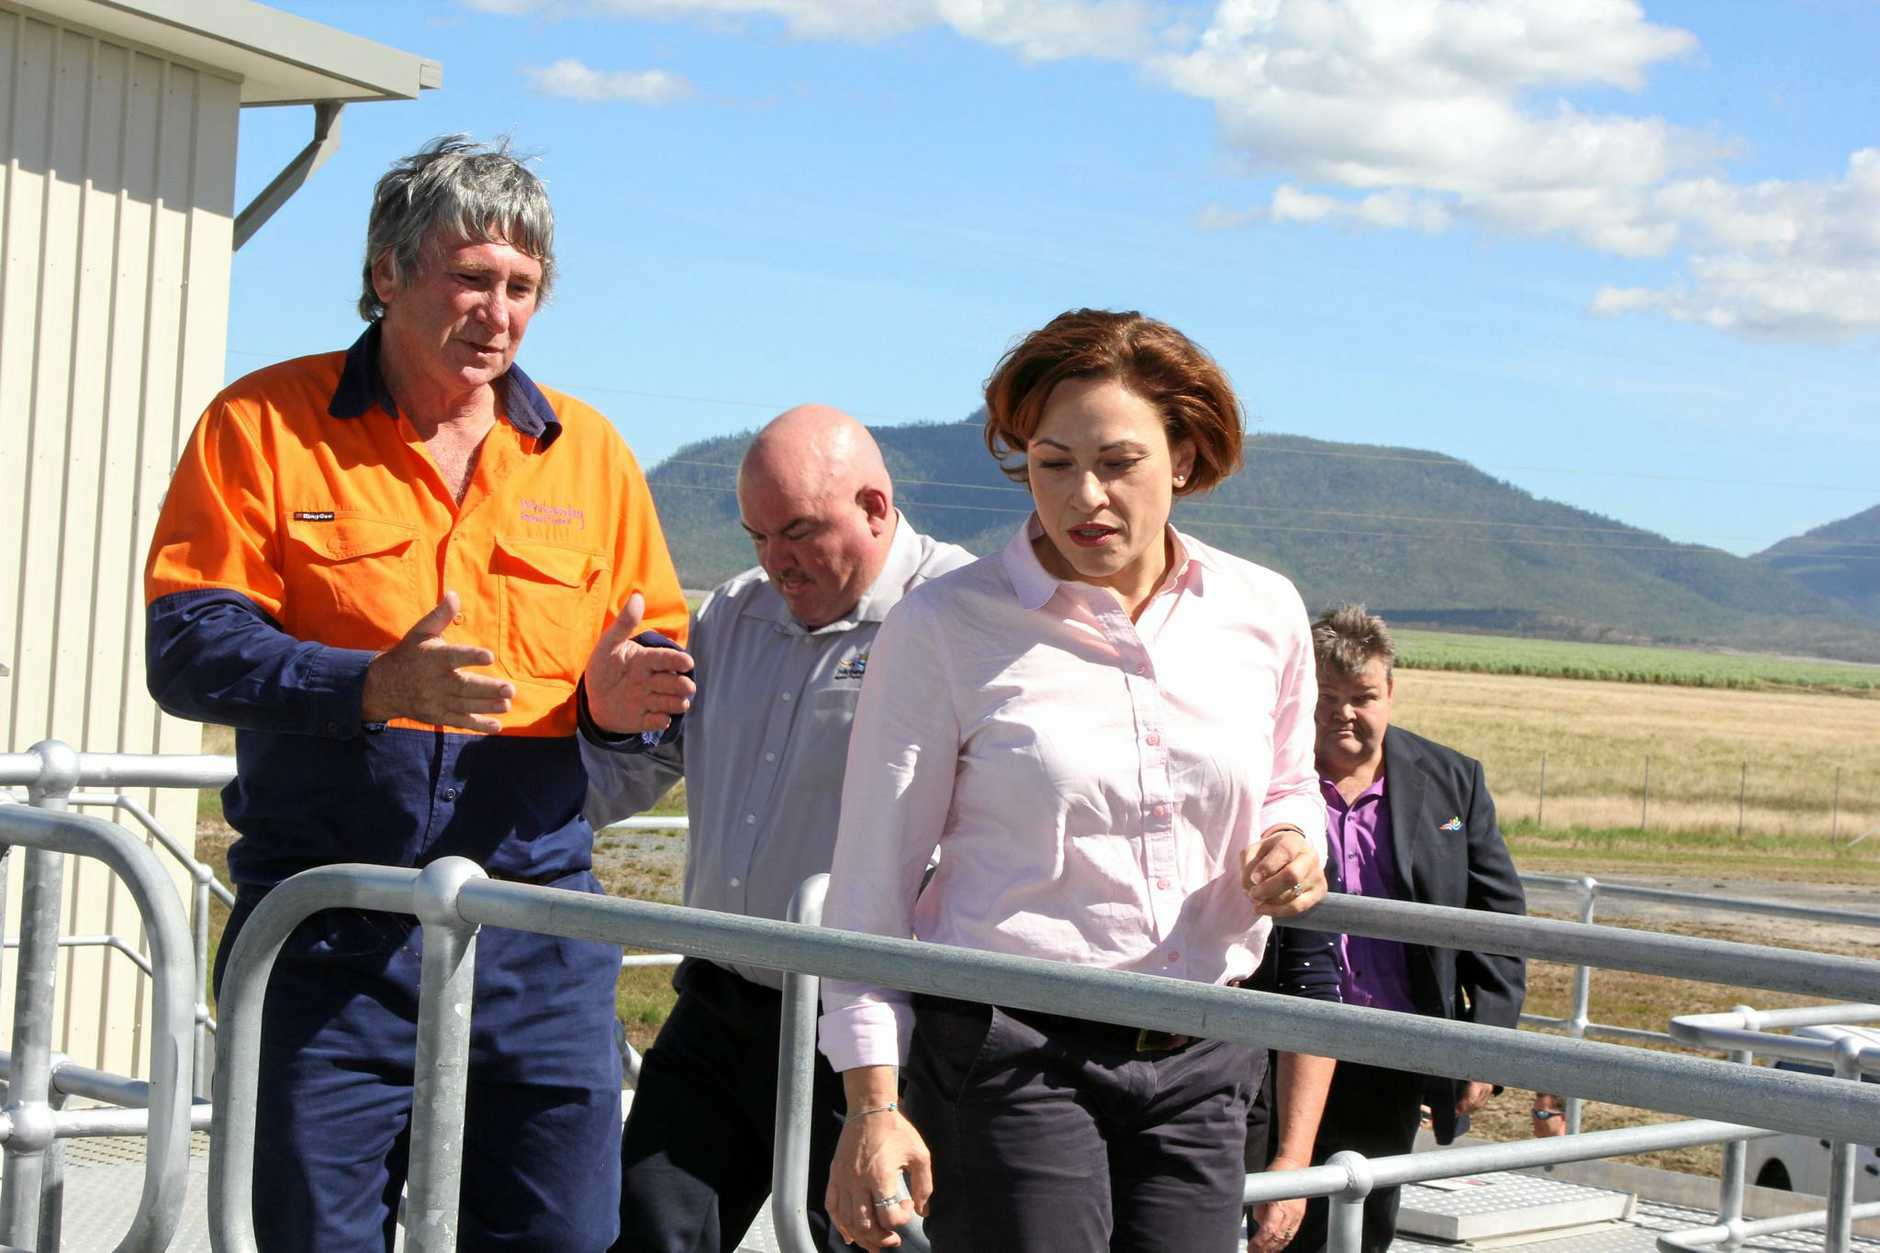 Acting Premier Jackie Trad tours the Bowen water treatment facility in Up River near Proserpine.